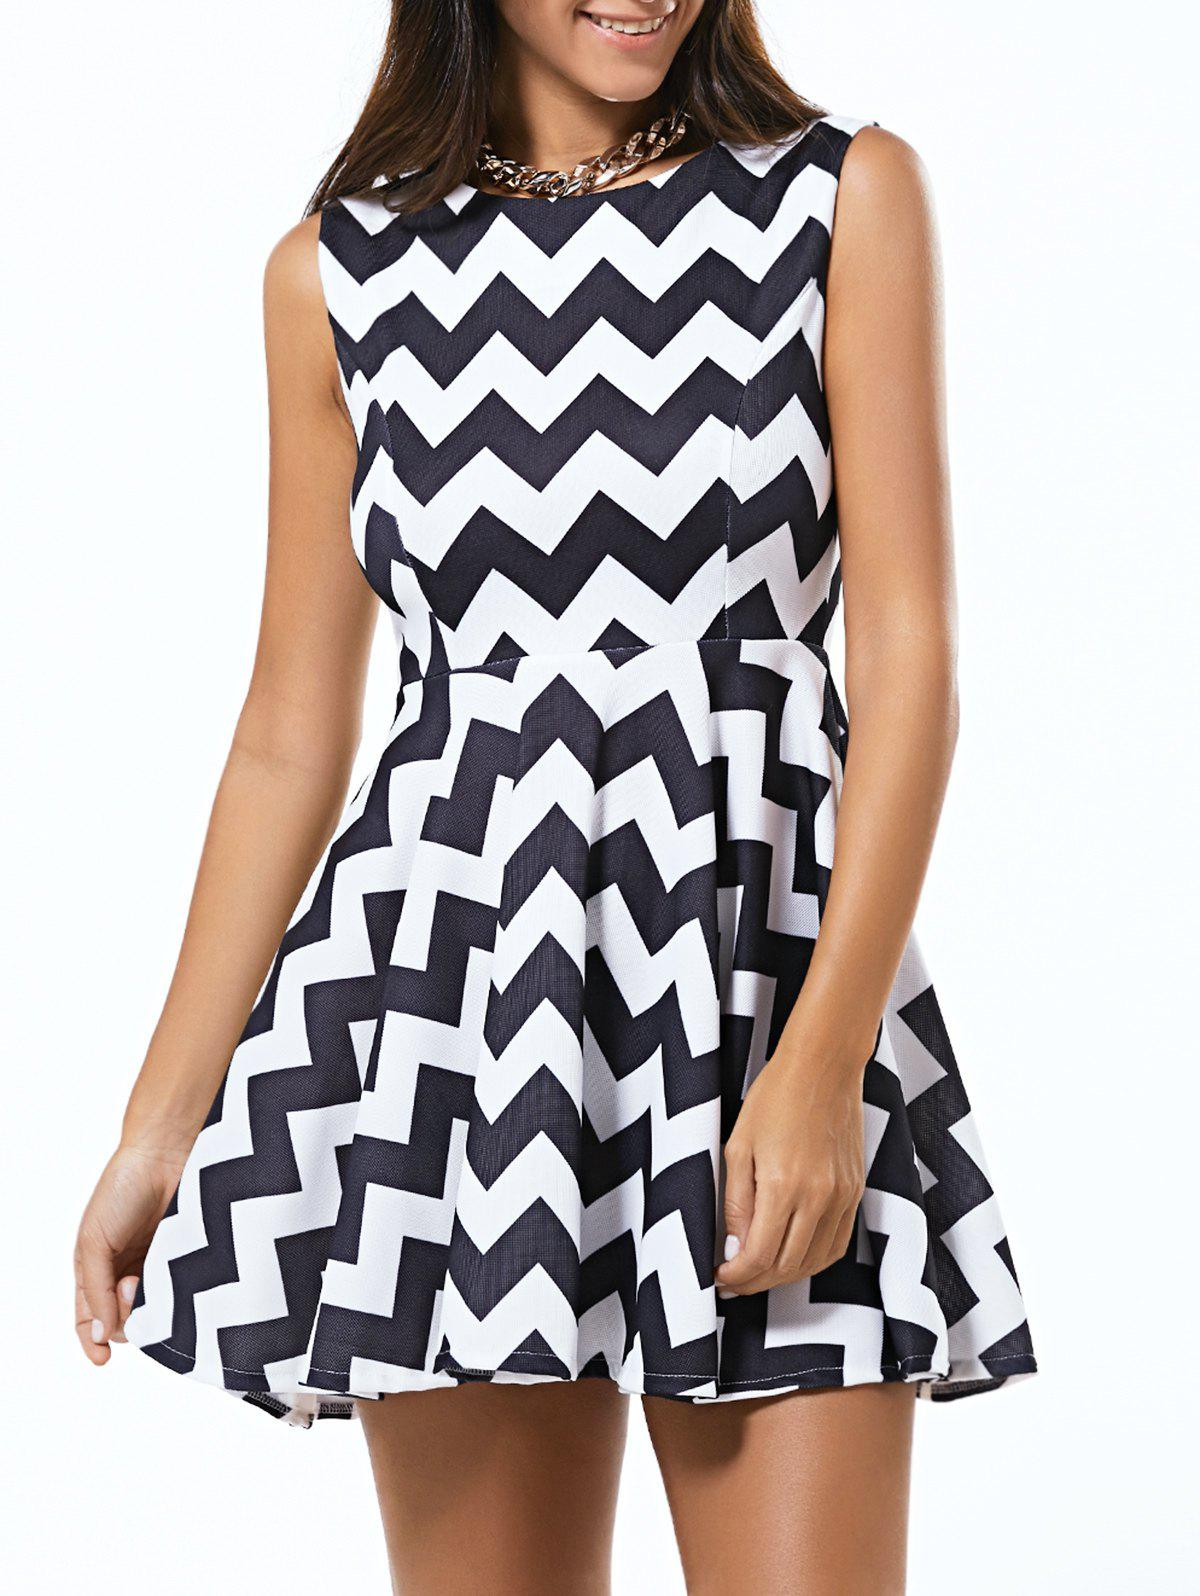 Zigzag Sleeveless Fit and Flare Dress